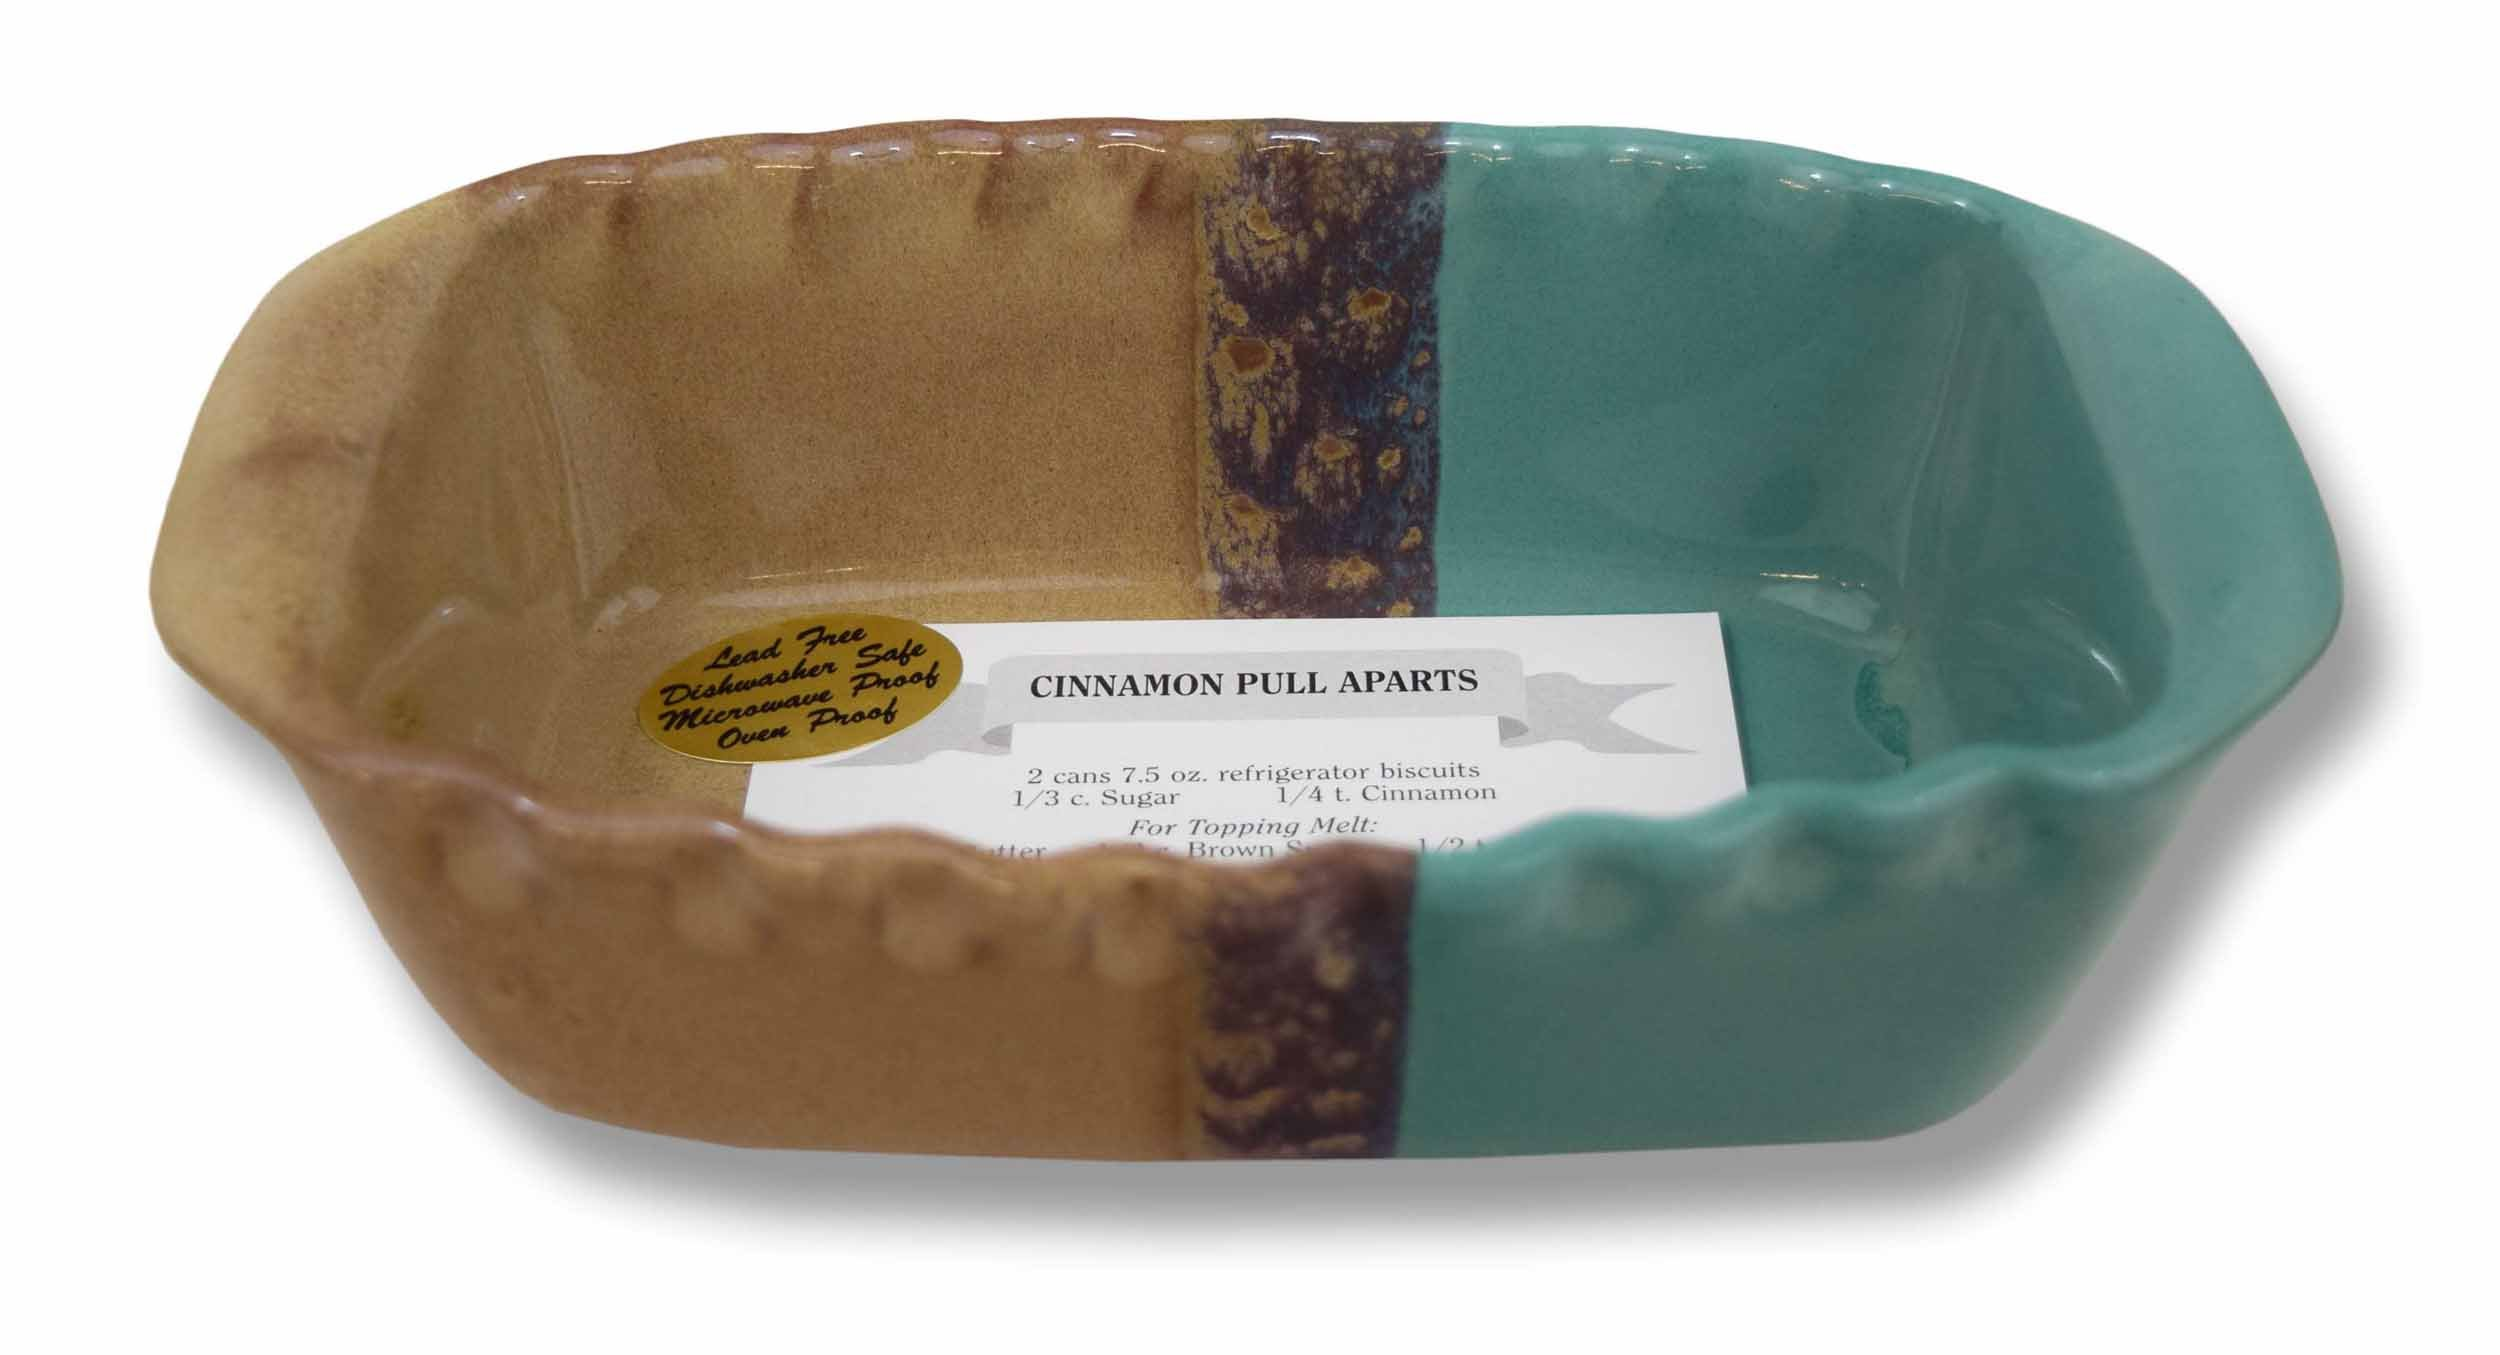 Clay In Motion Handmade Ceramic 1.25 Quart Loaf Pan - Island Oasis